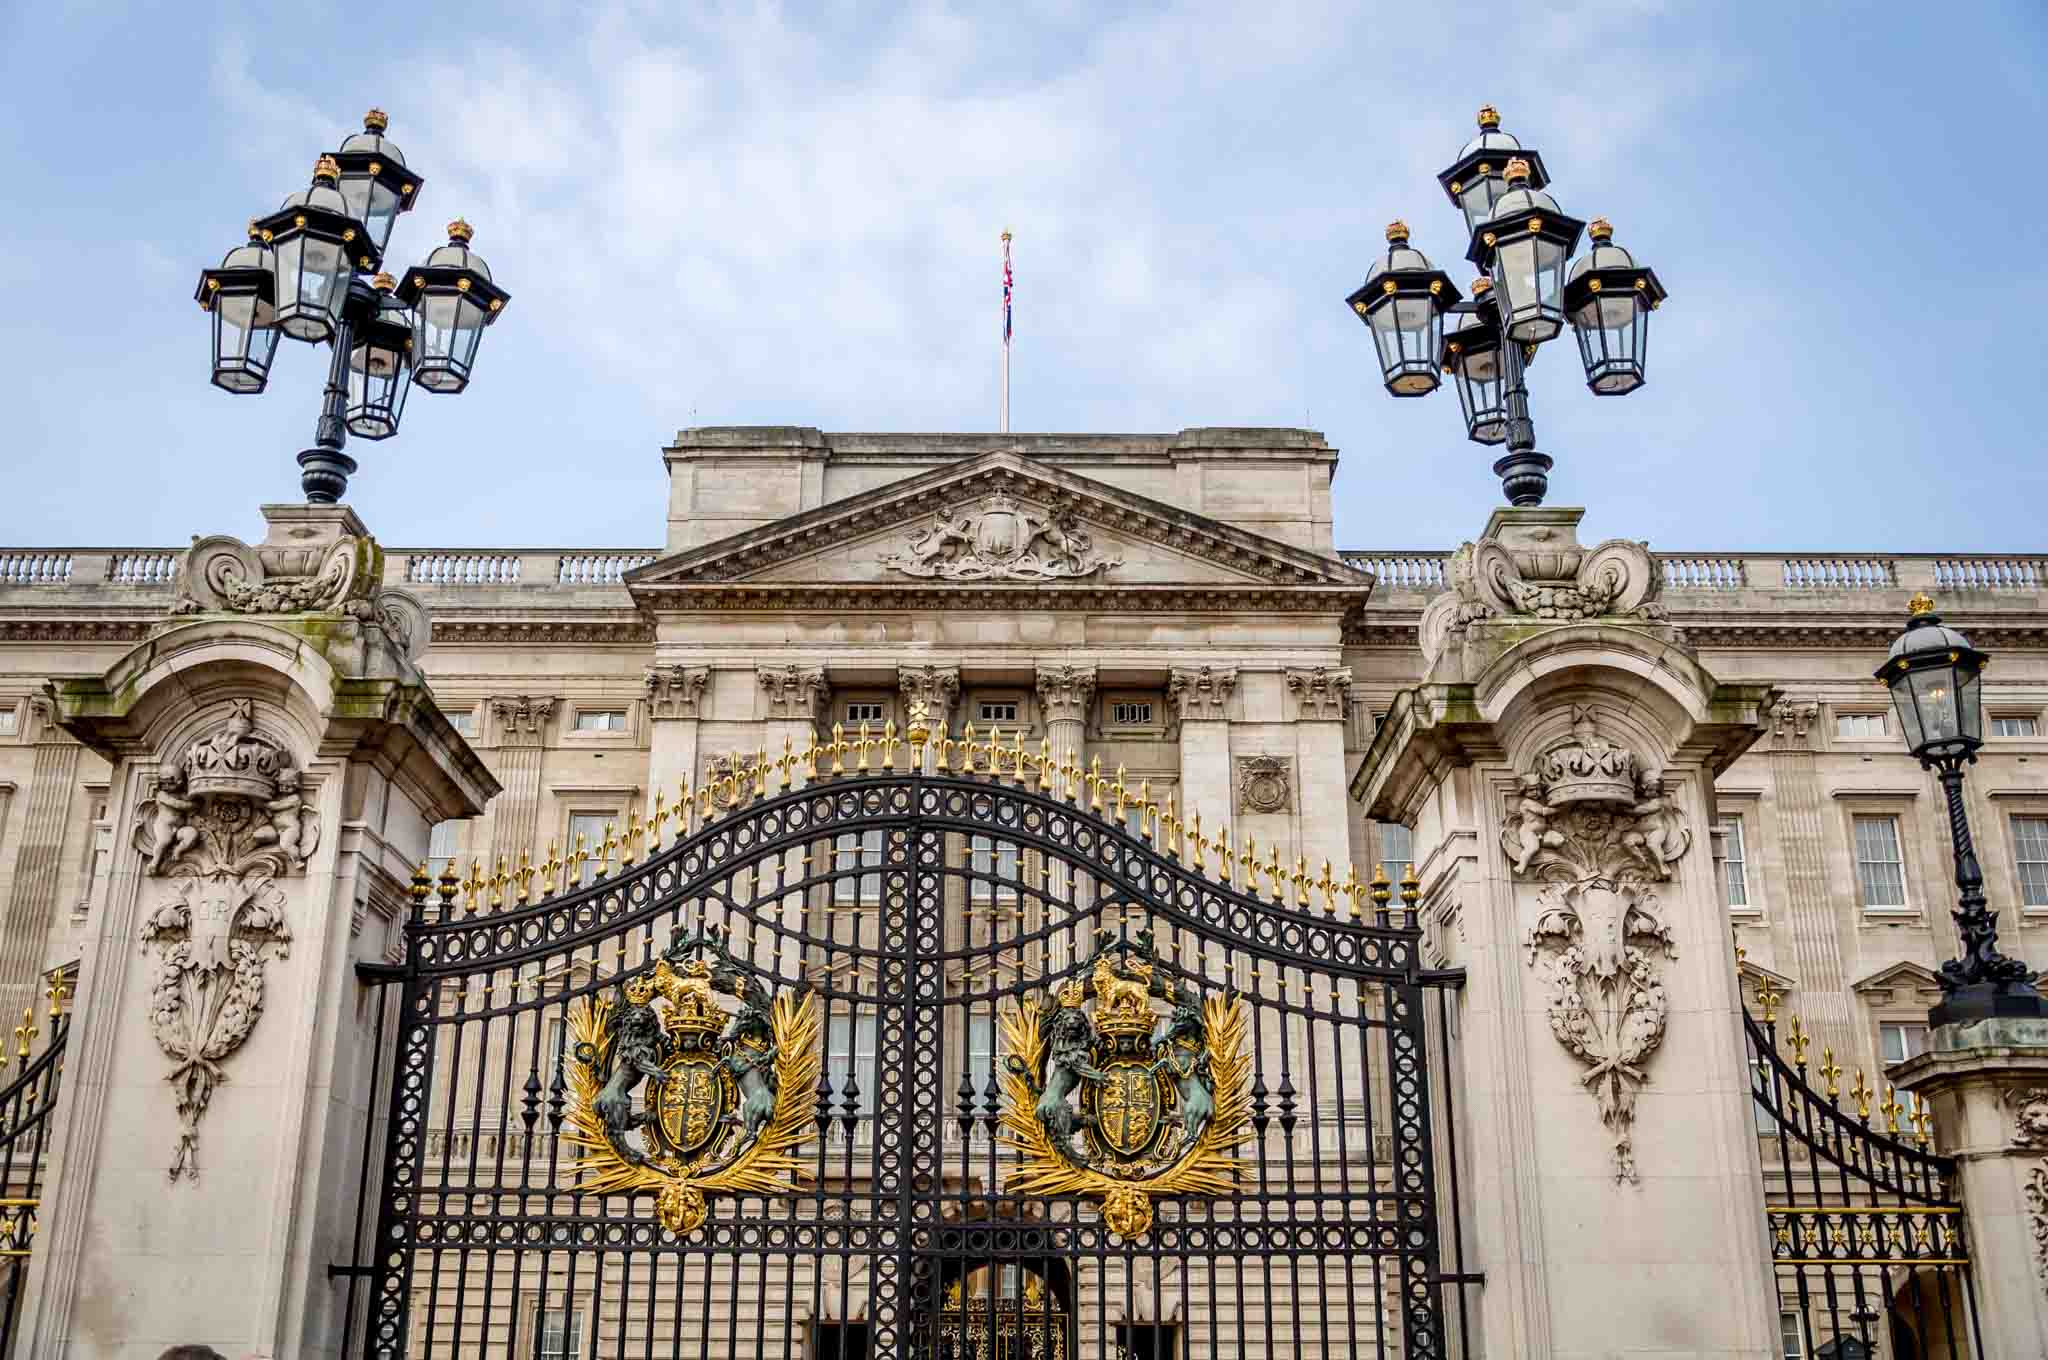 Experiencing London on a long Heathrow Layover. Buckingham Palace is the first stop on this step-by-step itinerary.